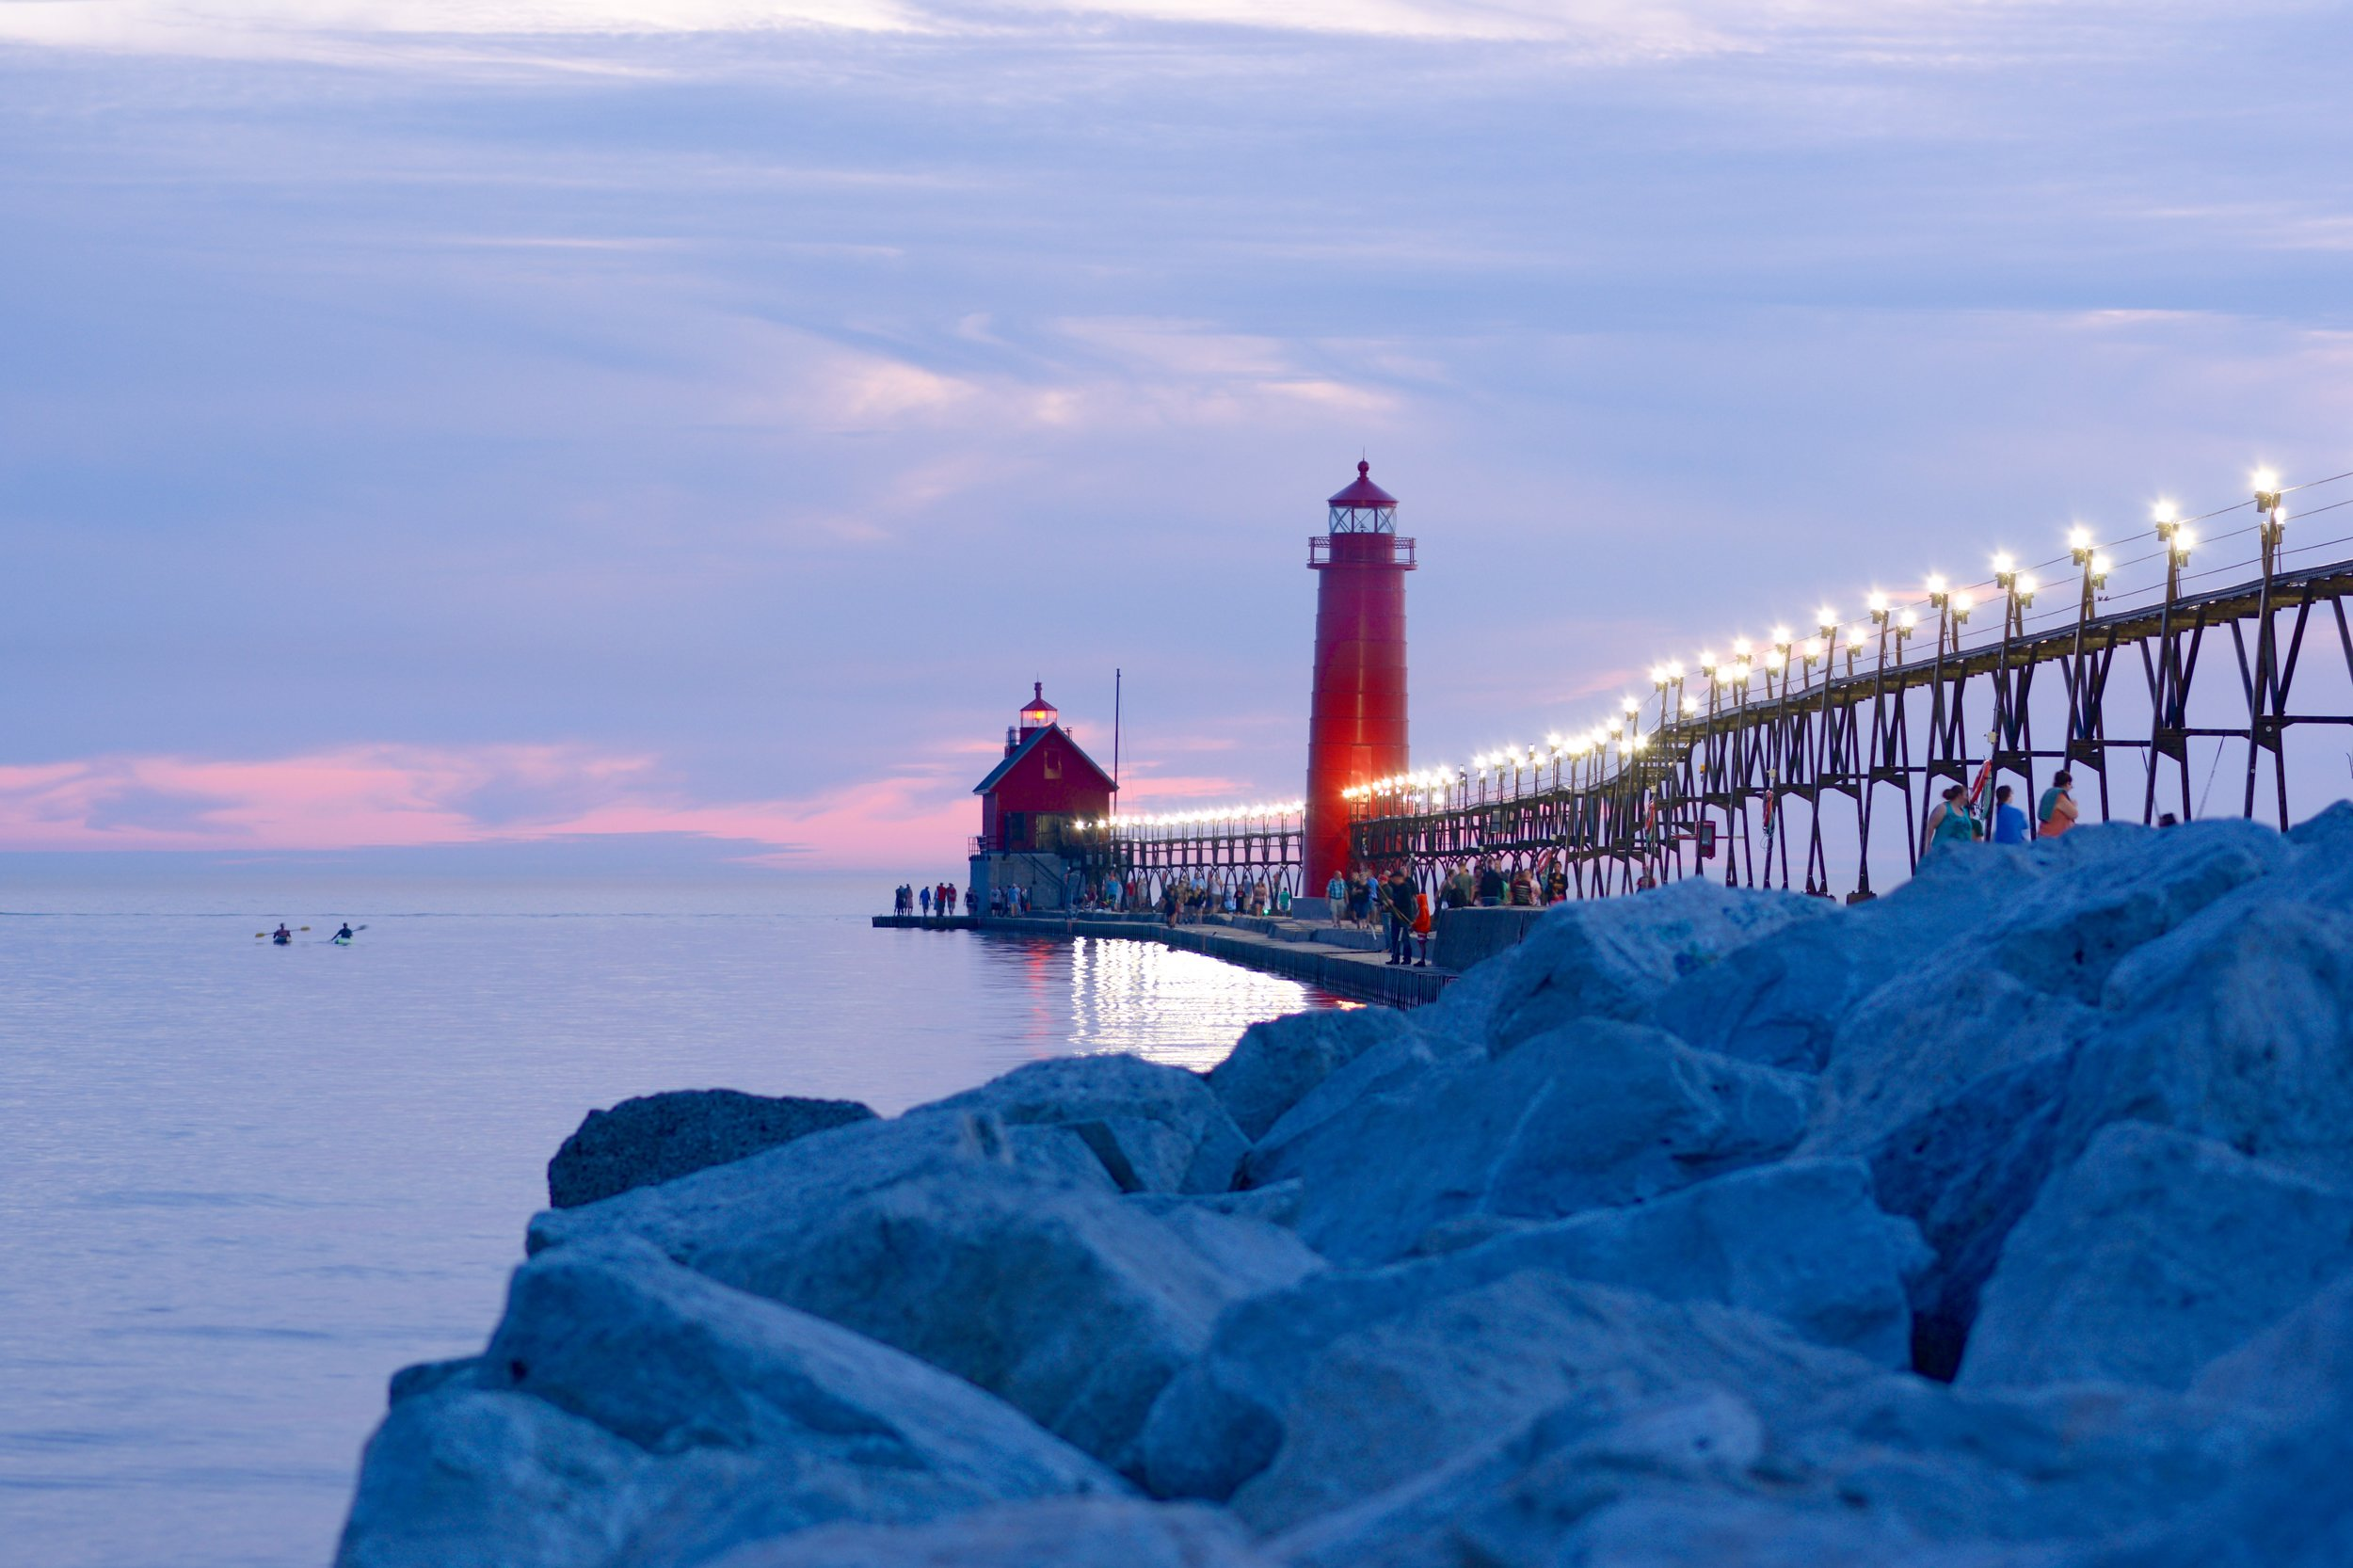 Summertime in Grand Haven (before the lights were removed from the catwalk).